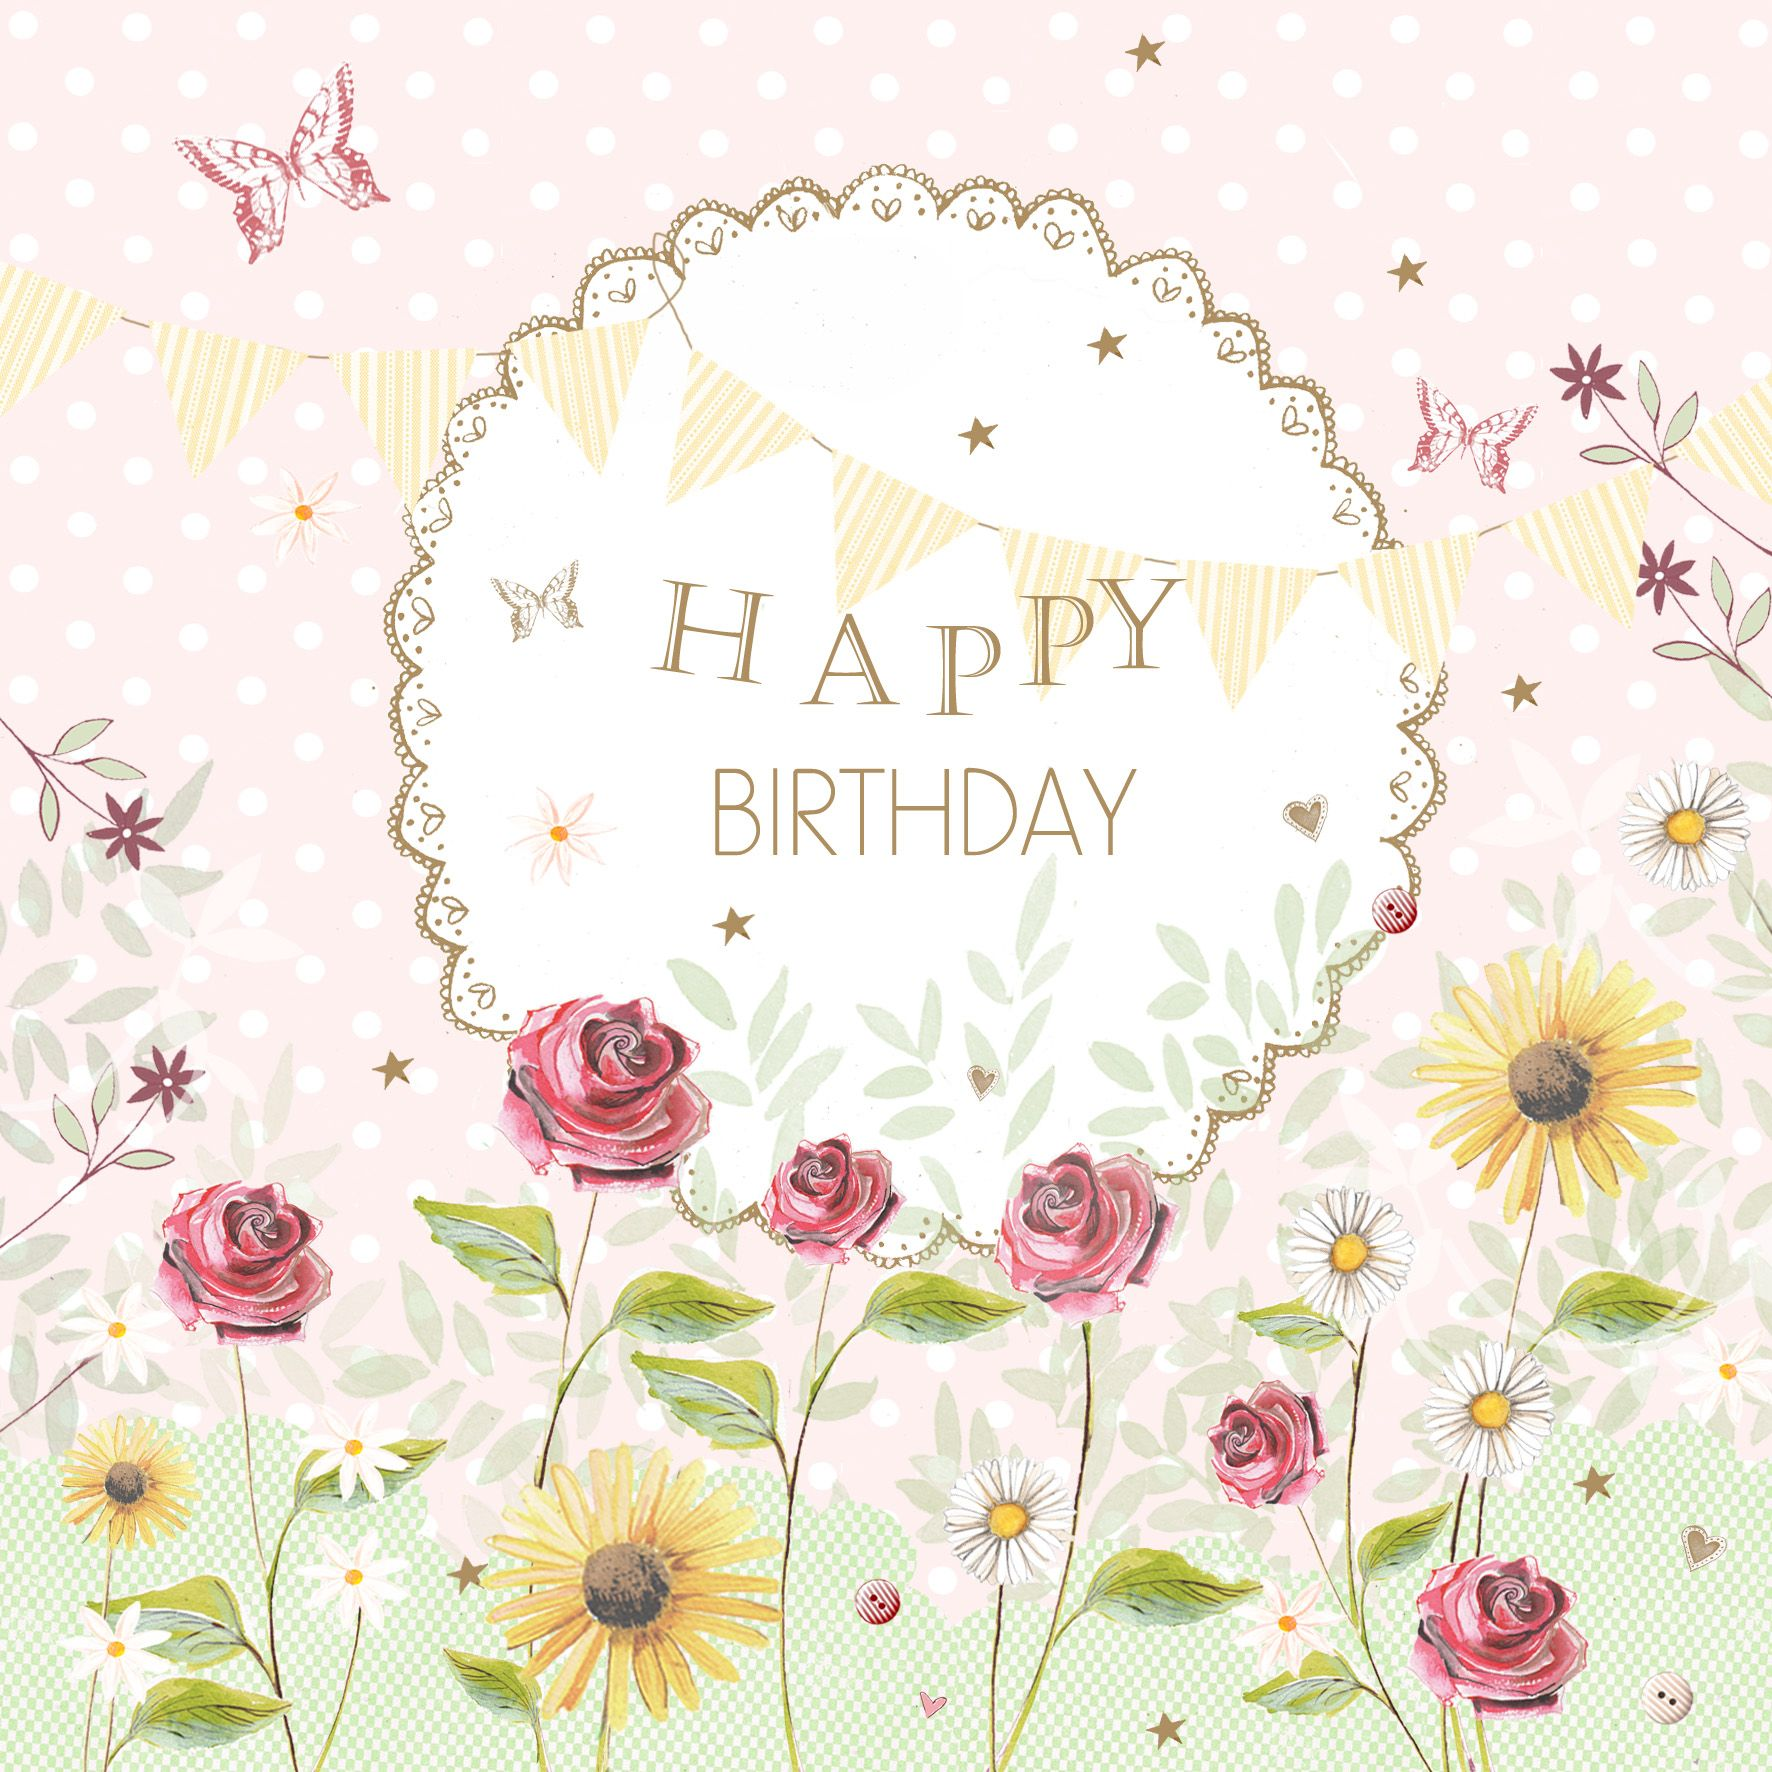 Happy birthday happy birthday pinterest happy birthday comic happy birthday images izmirmasajfo